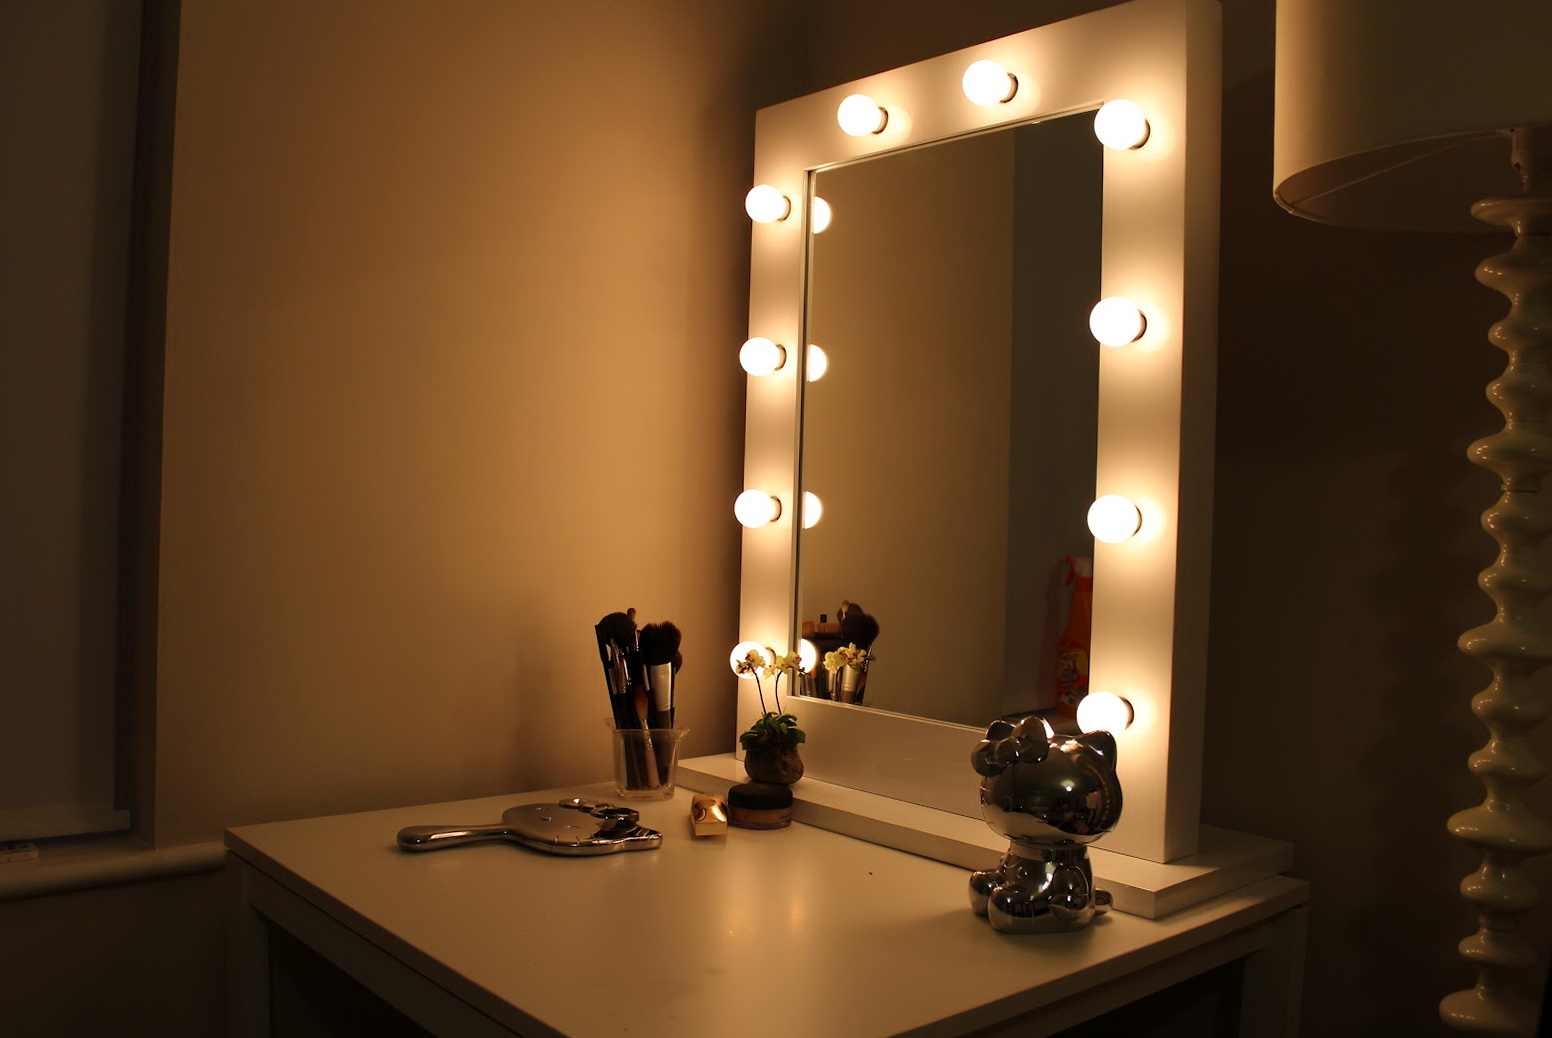 Lighted makeup mirror vanity home design ideas lighted makeup mirror vanity aloadofball Image collections